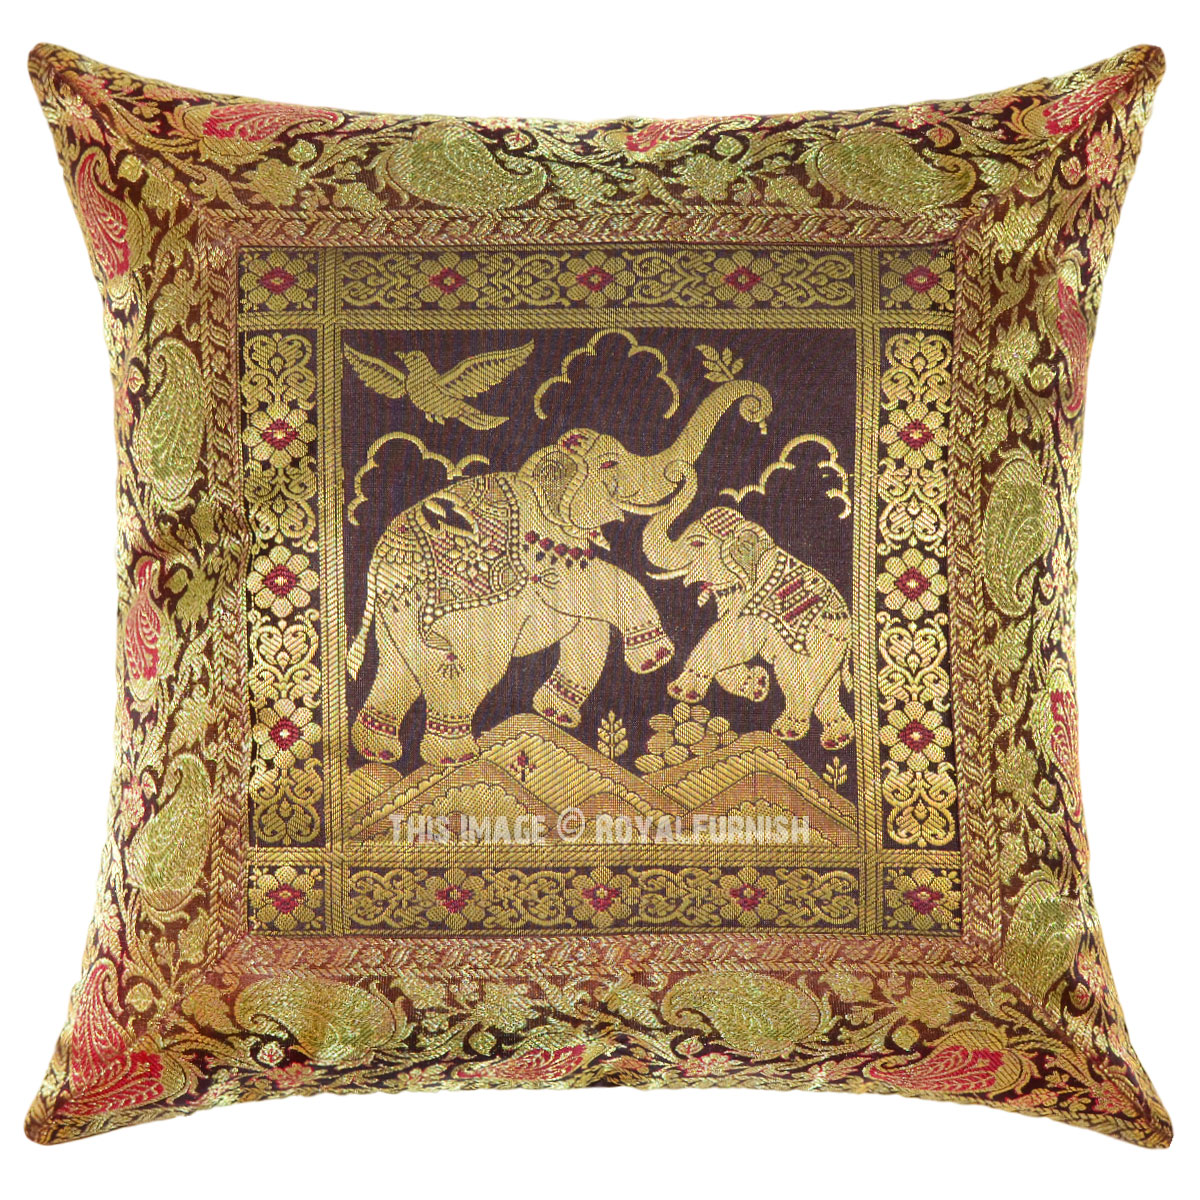 Decorative Pillow Brown : Brown Decorative Elephant Family Silk Throw Pillow Case - RoyalFurnish.com